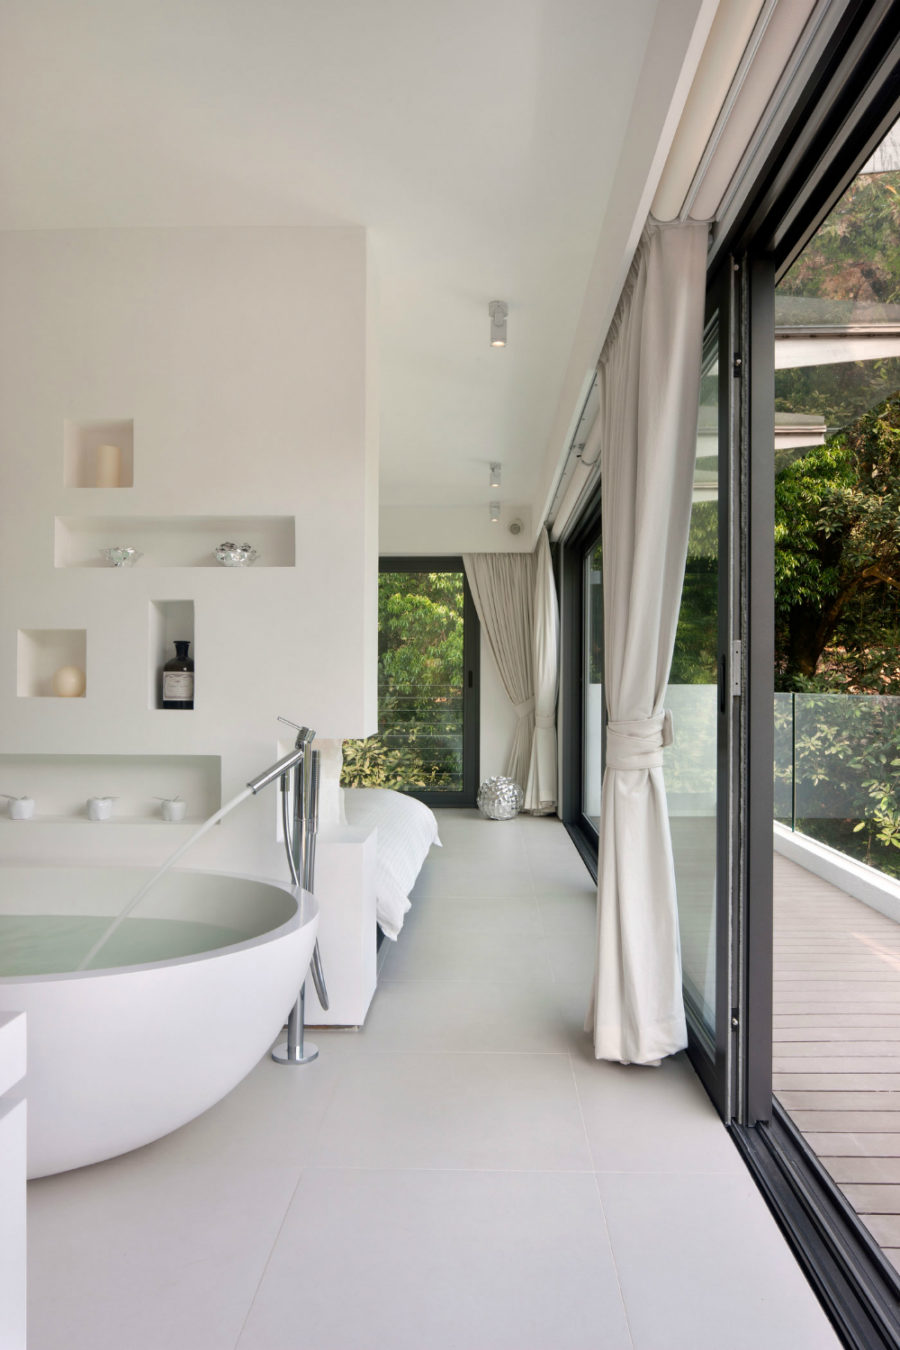 Casa Bosques by Original Vision